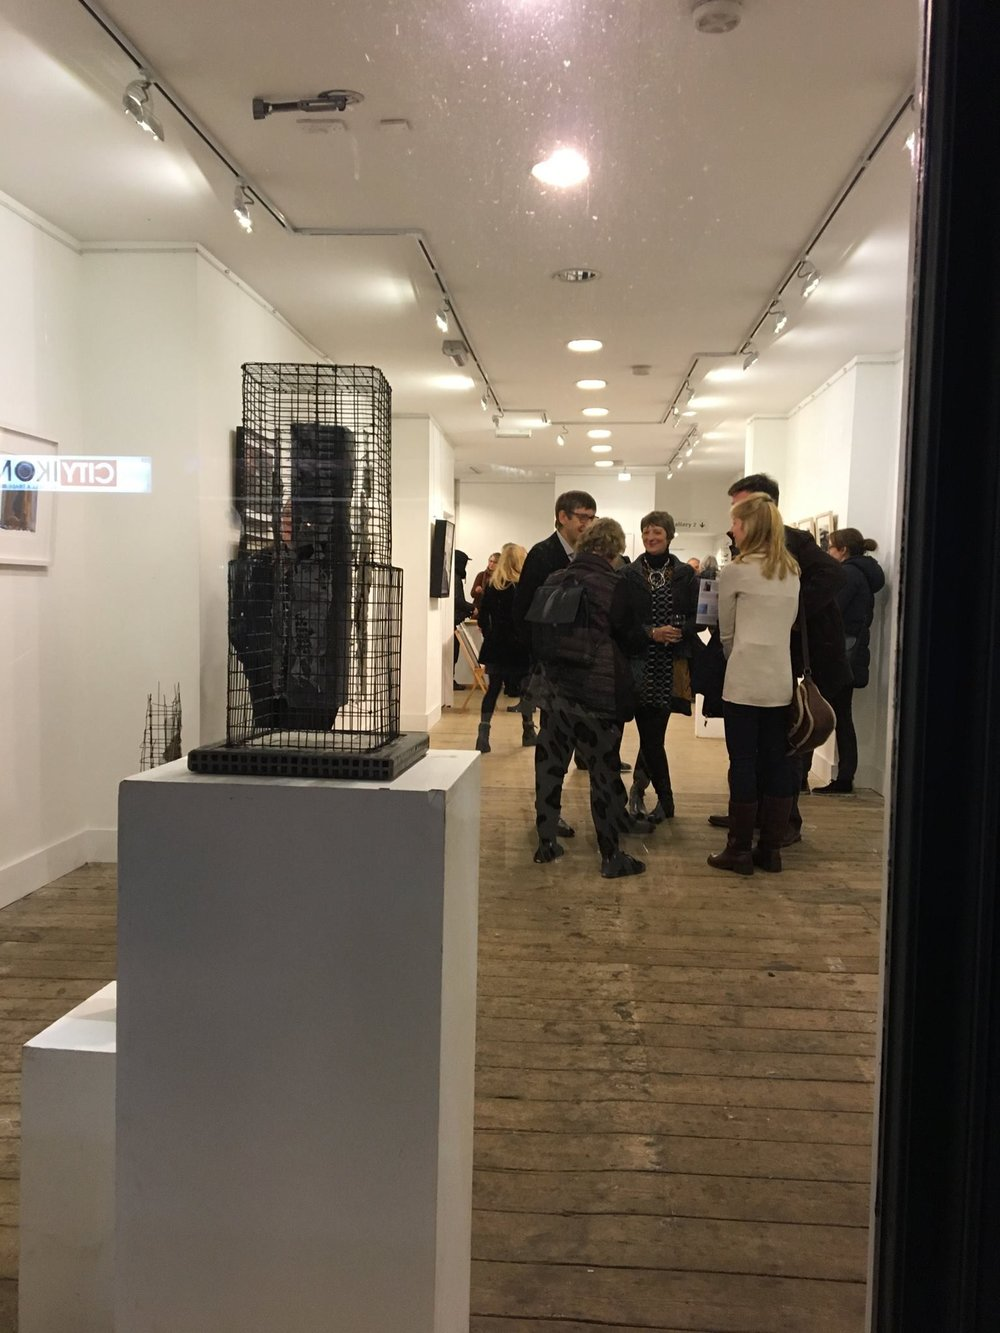 image from shifting states pv upstairs.jpg